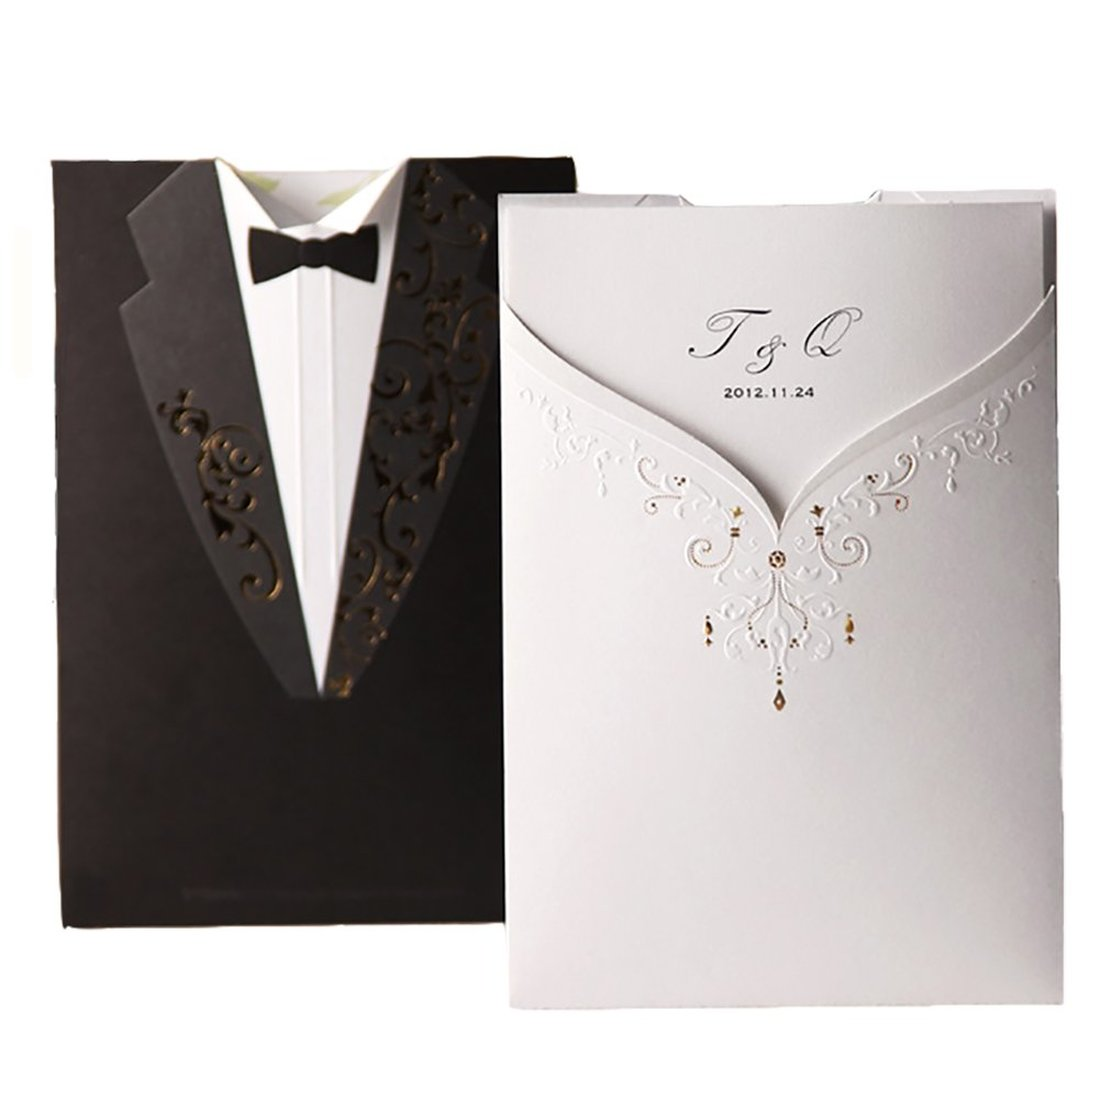 1Pcs Blank Black & White Laser Cut Acrylic Wedding Invitations Card, Groom And Bridal Tuxedo Invitation Marriage With Envelopes